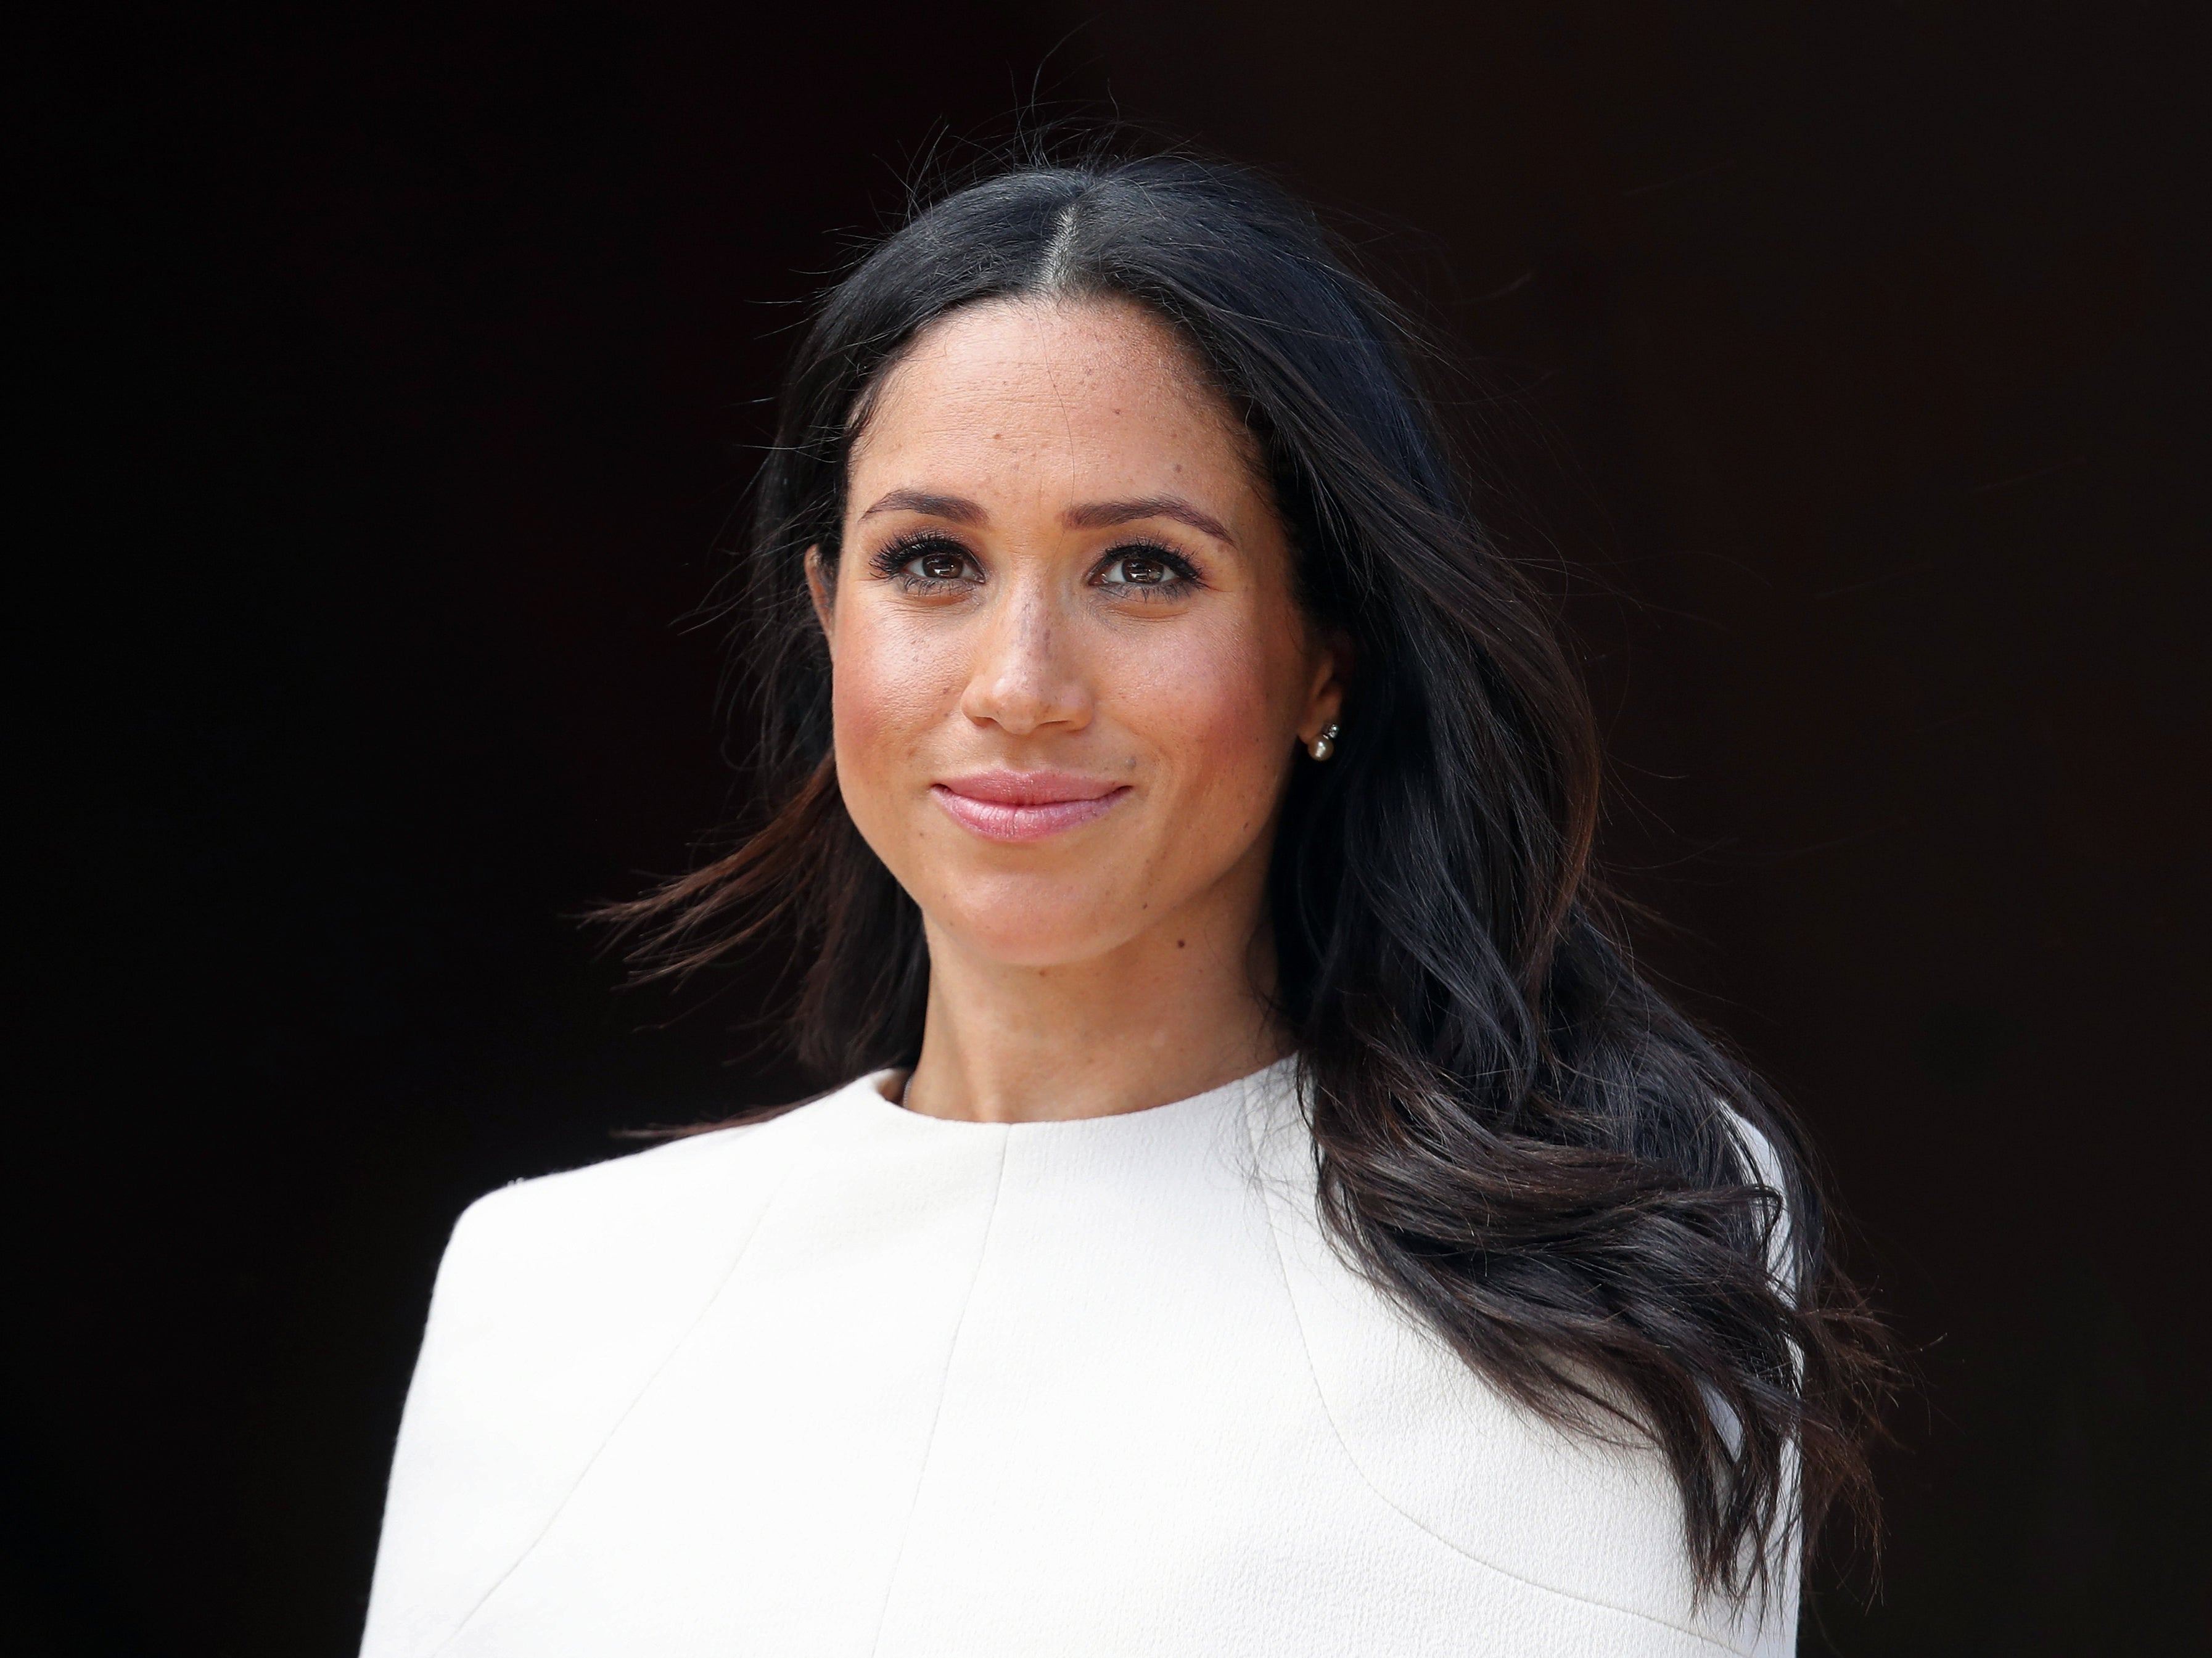 Meghan Markle's essay is a powerful plea for compassion – something we should heed following The Crown